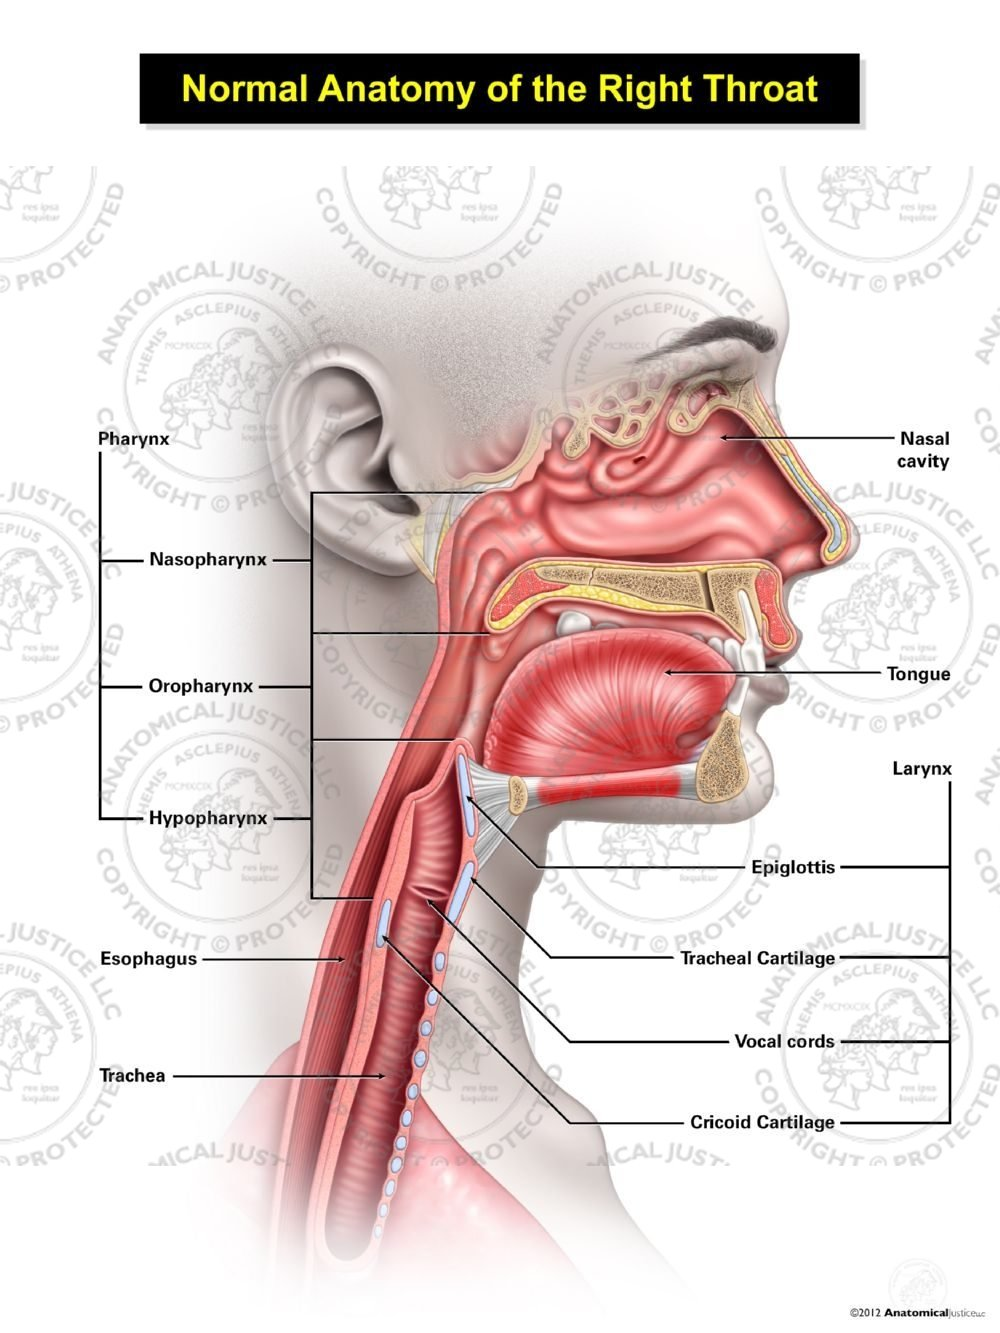 Normal    Female    Anatomy of the Right Throat Illustration